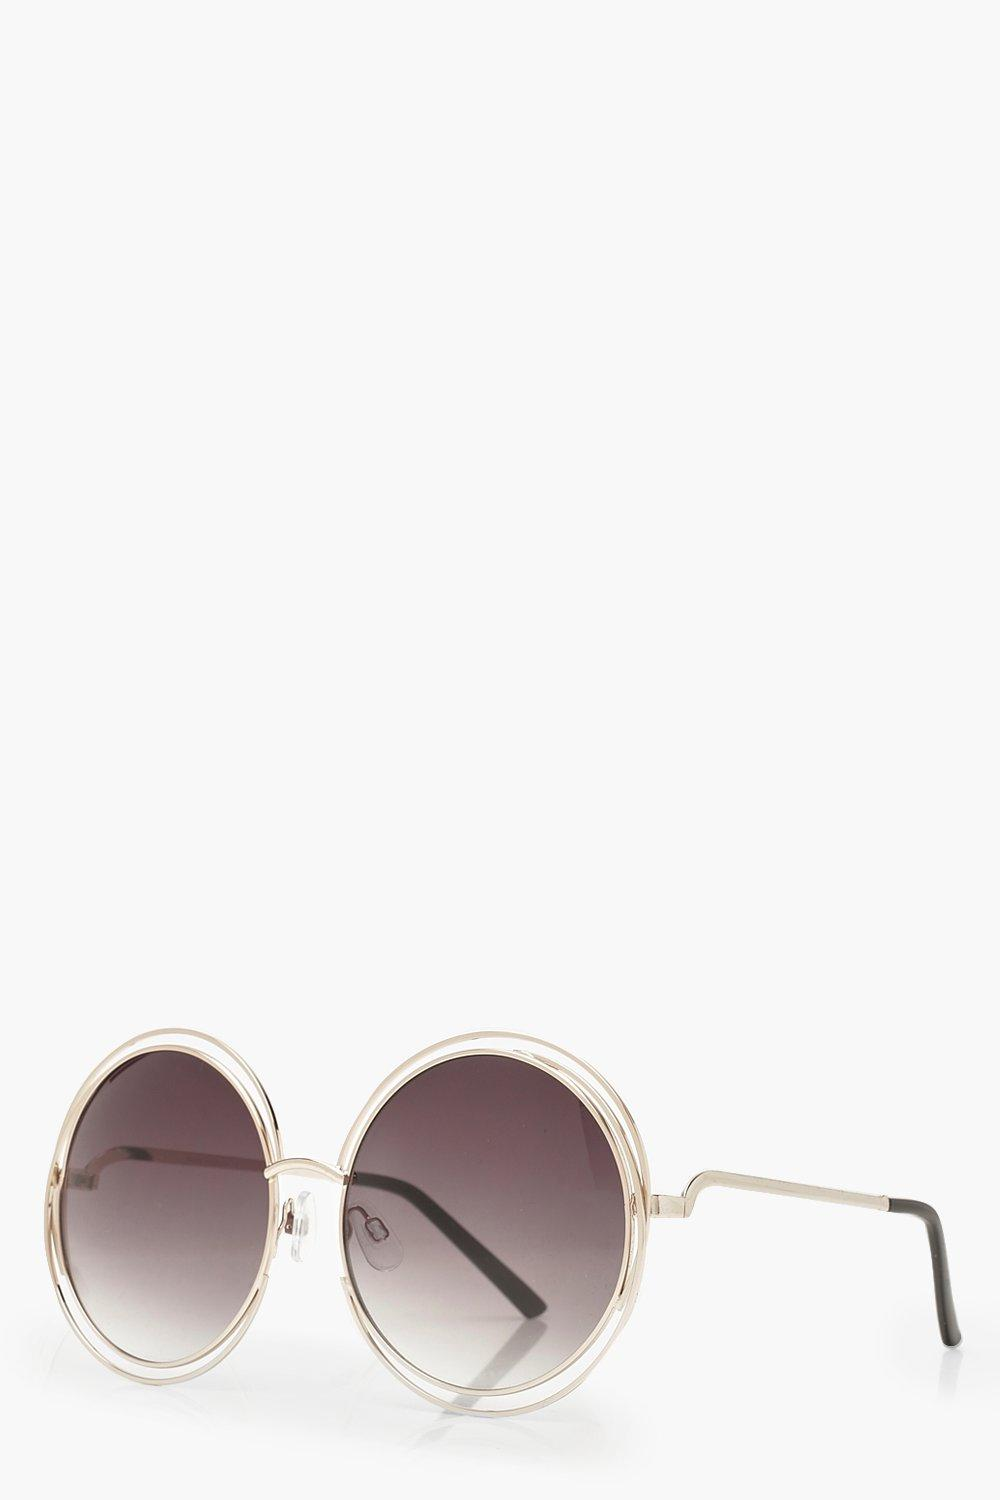 Sale Accessories Cut Out Frame Round Sunglasses